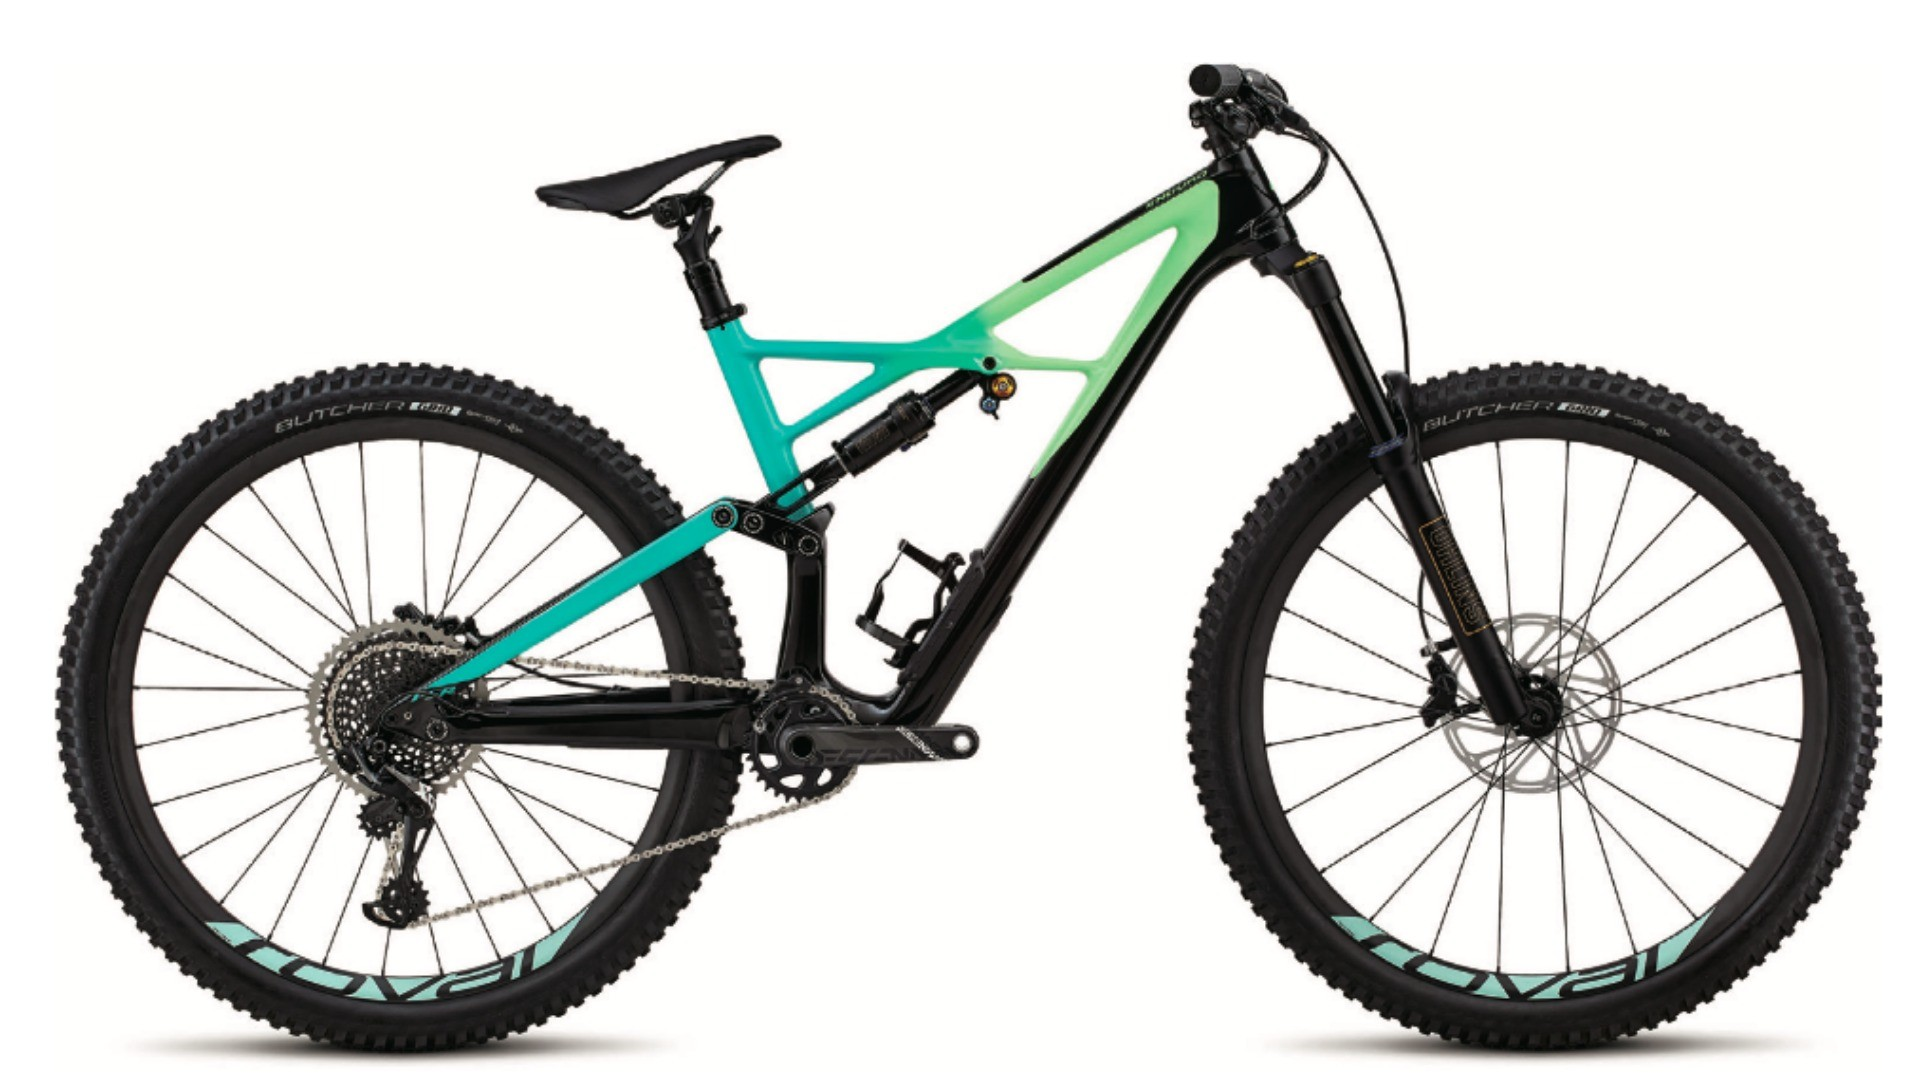 The Enduro Pro 29er has carbon frame, Öhlins suspension and SRAM 1x12 gearing